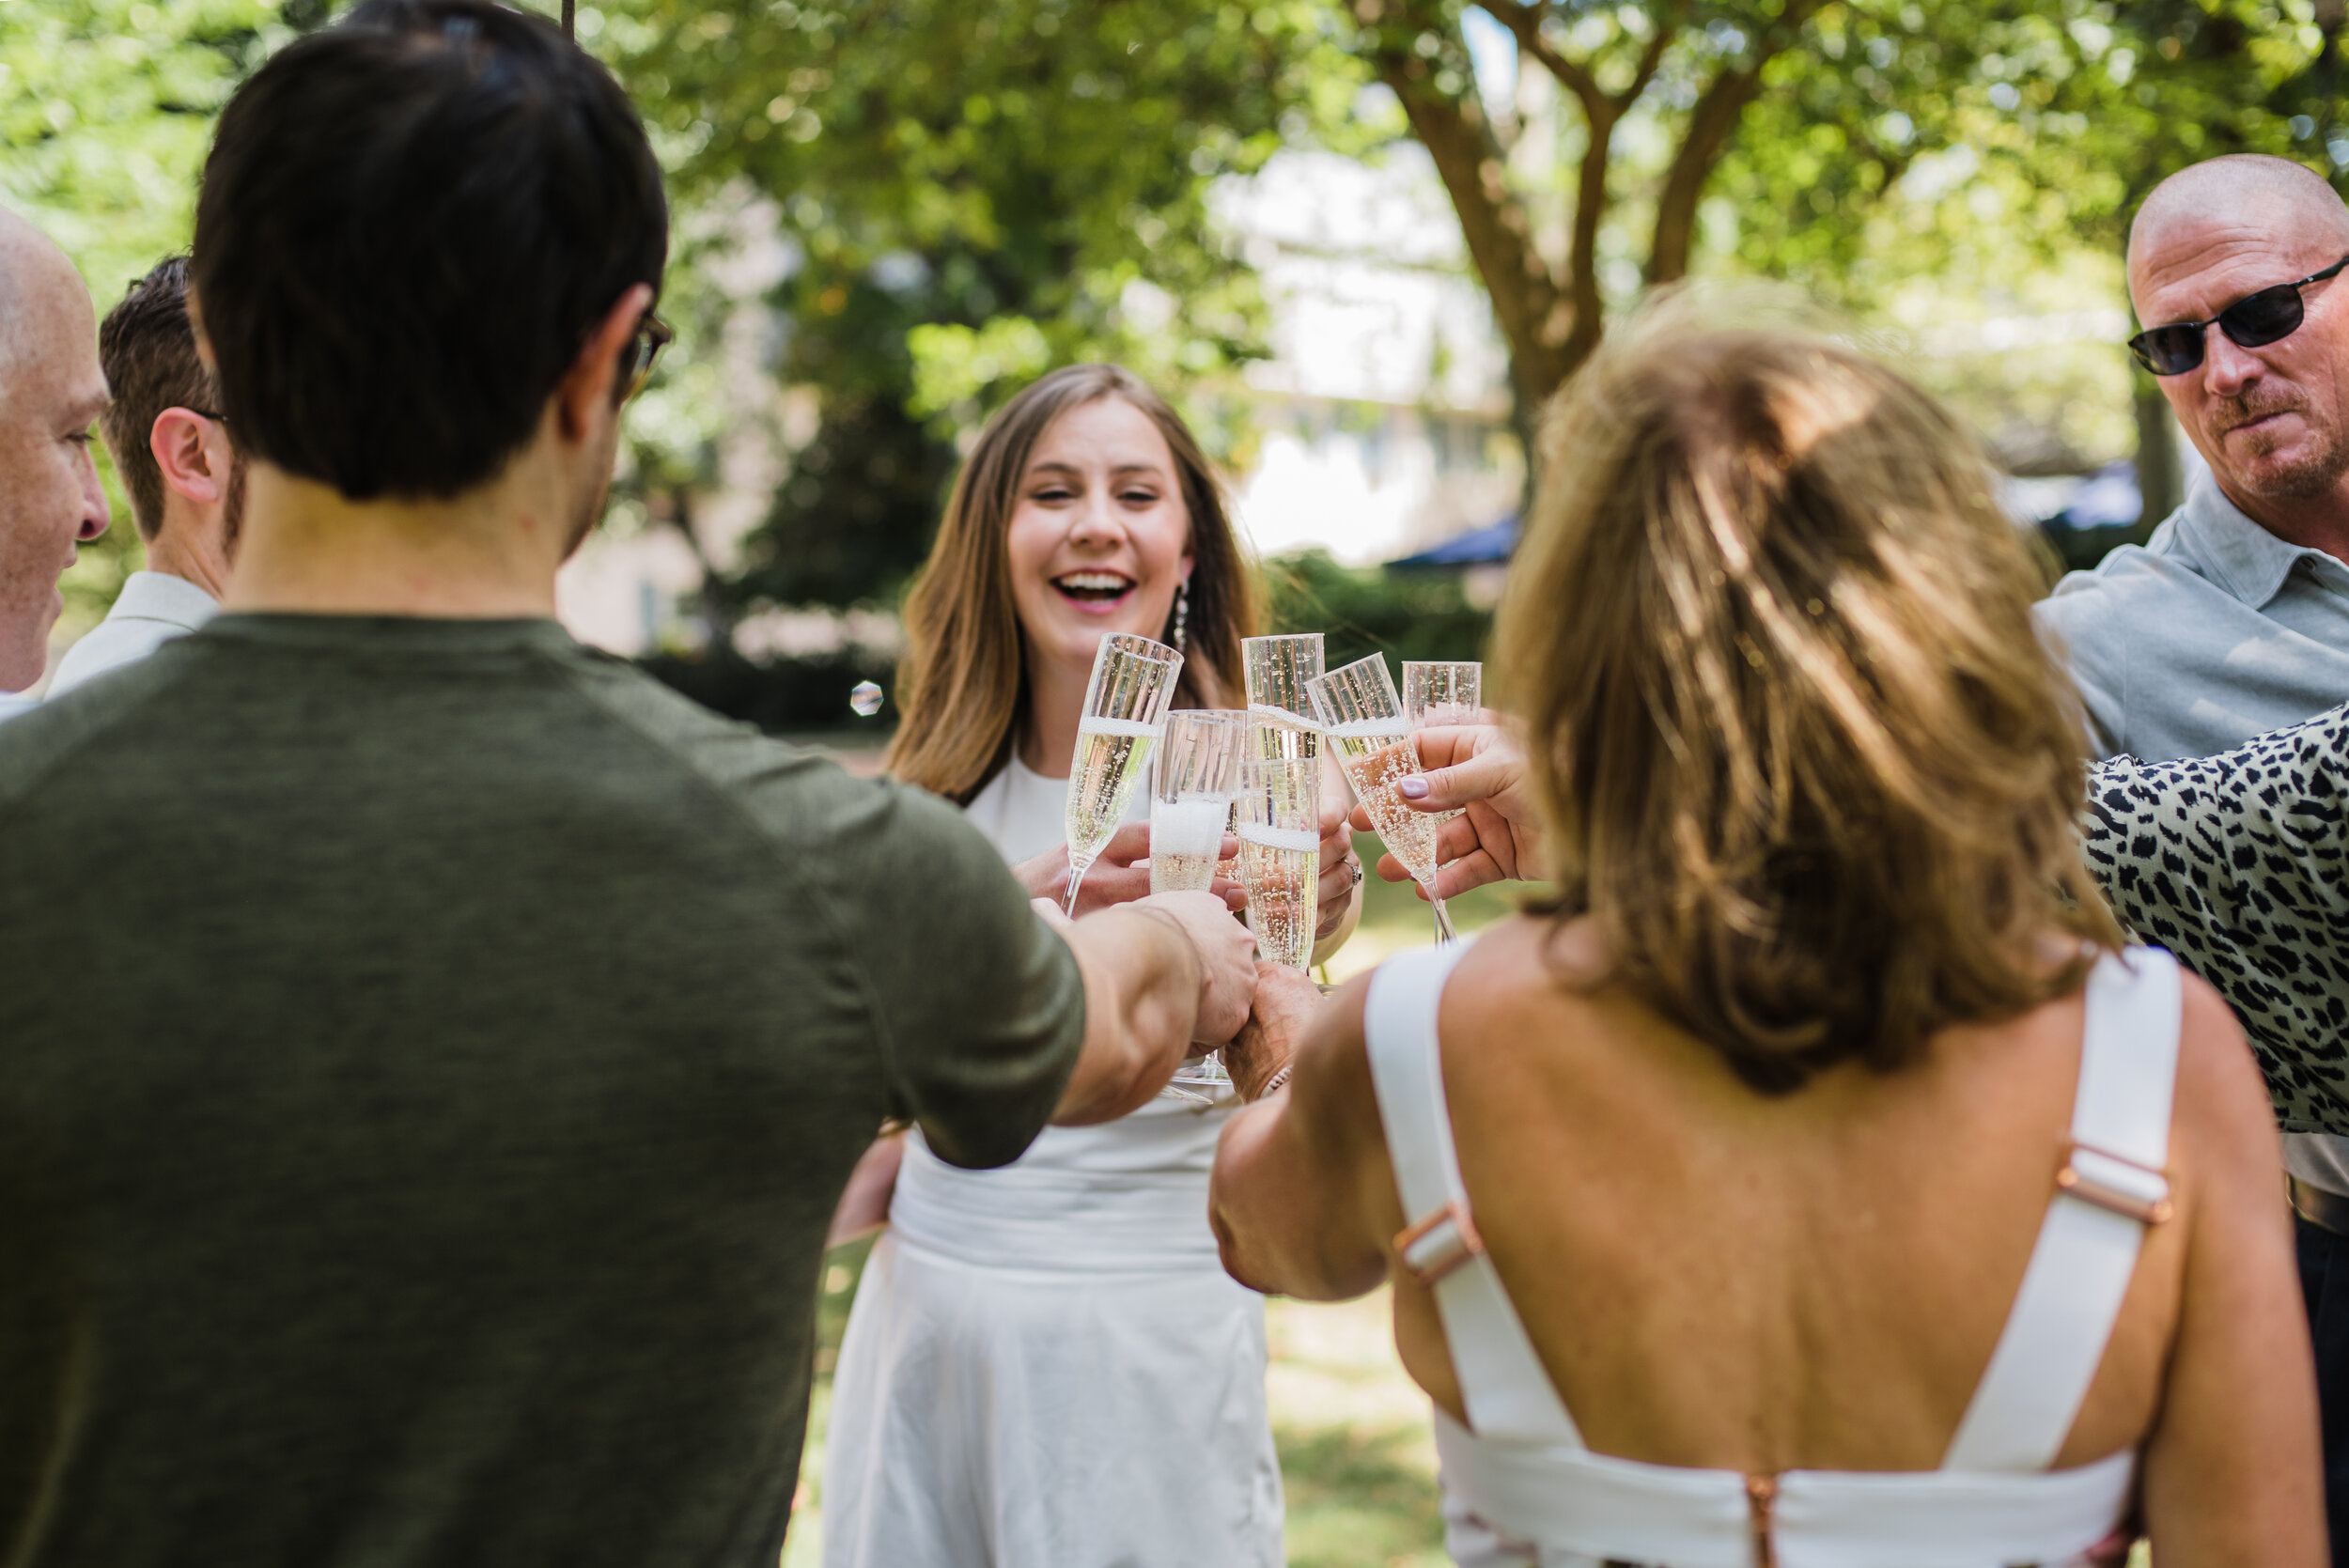 Small group of elopement guests celebrating with champagne.